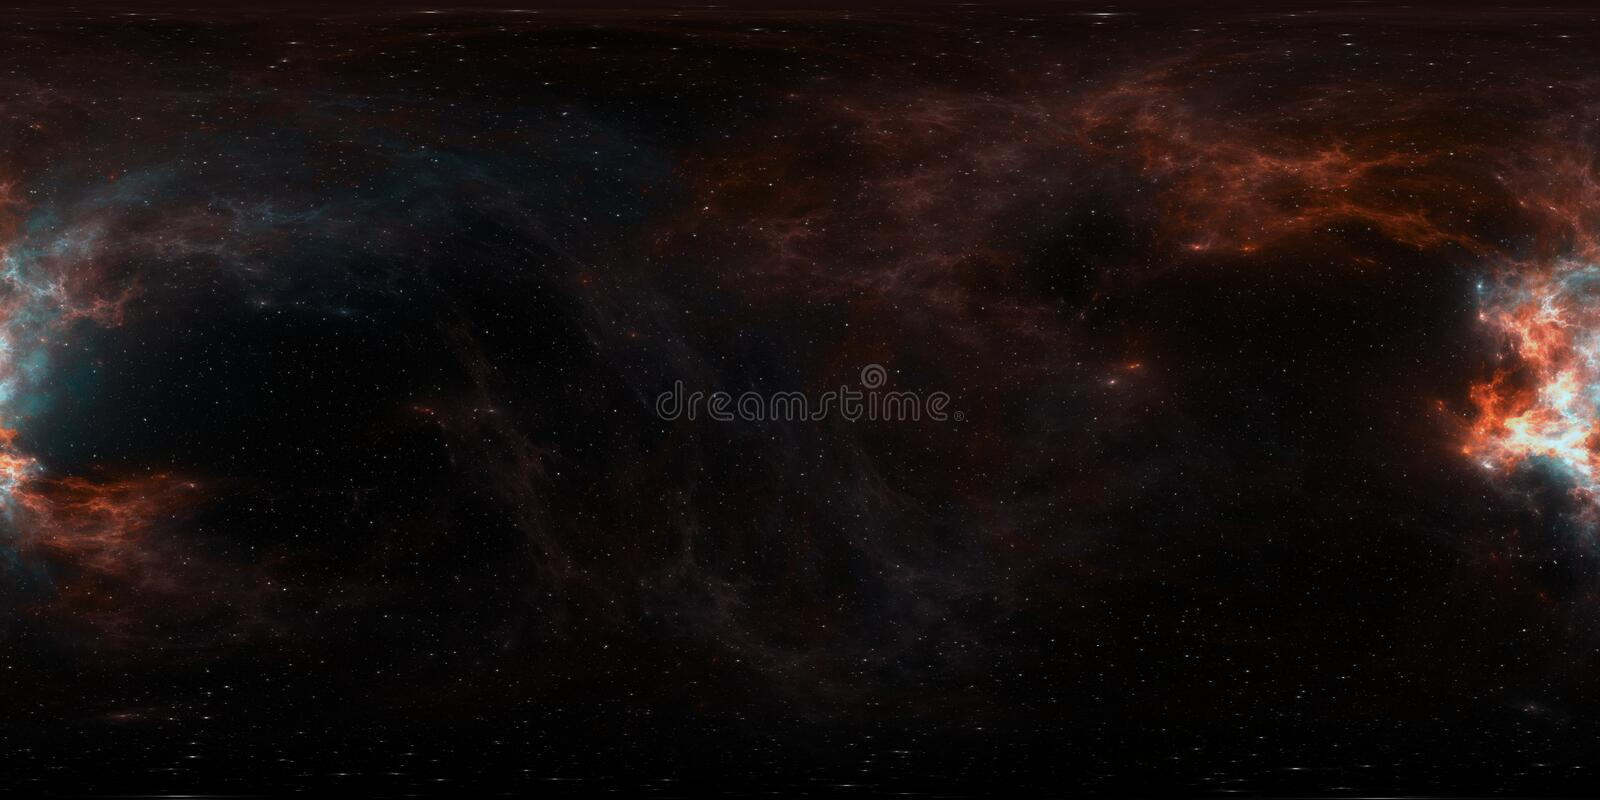 360 degree giant nebula after a supernova explosion, equirectangular projection, environment map. HDRI spherical panorama royalty free stock images